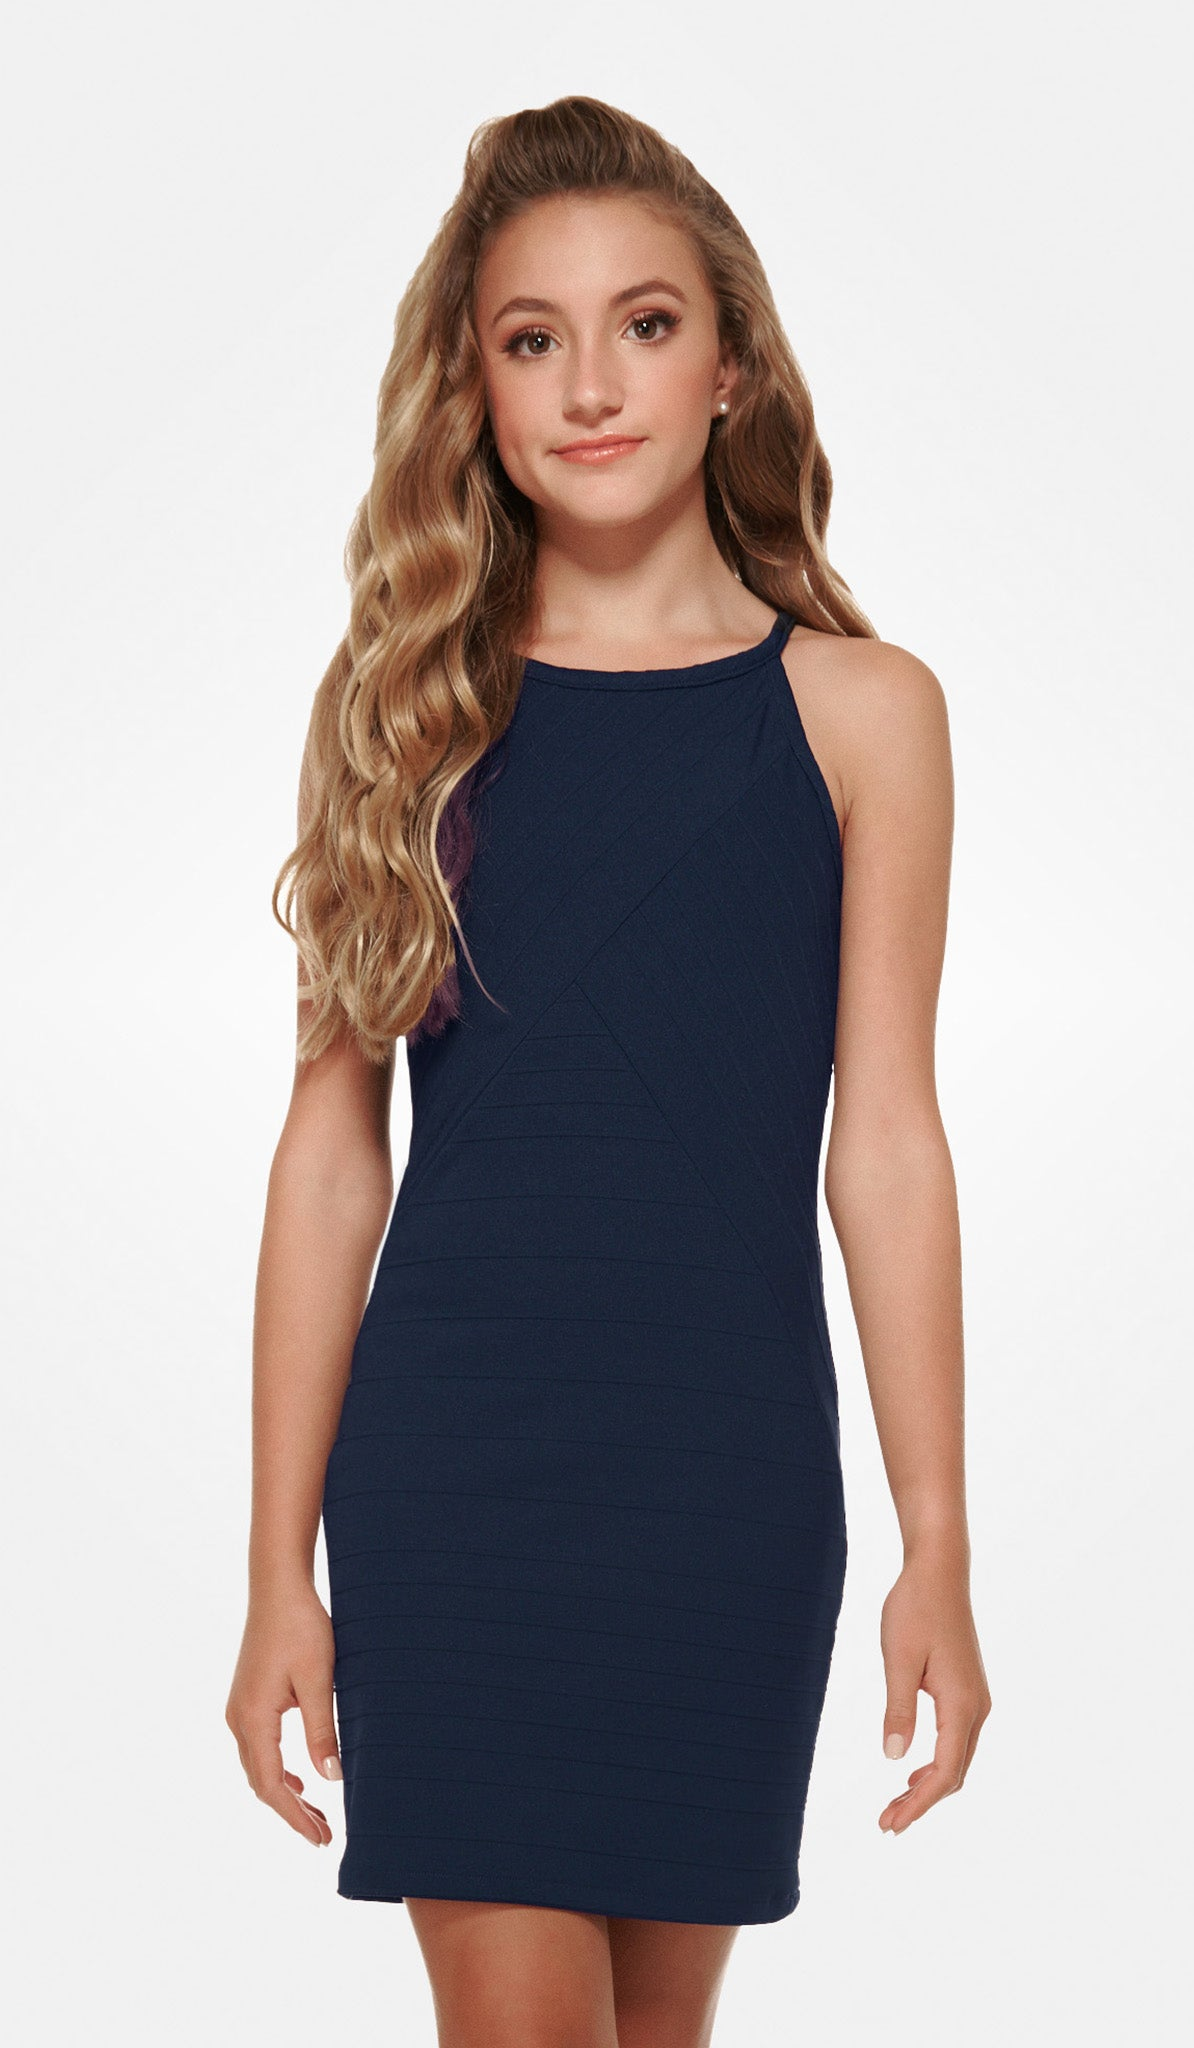 The Sally Miller Mandy Dress Navy varigated stripe textured stretch knit body con dress fully lined